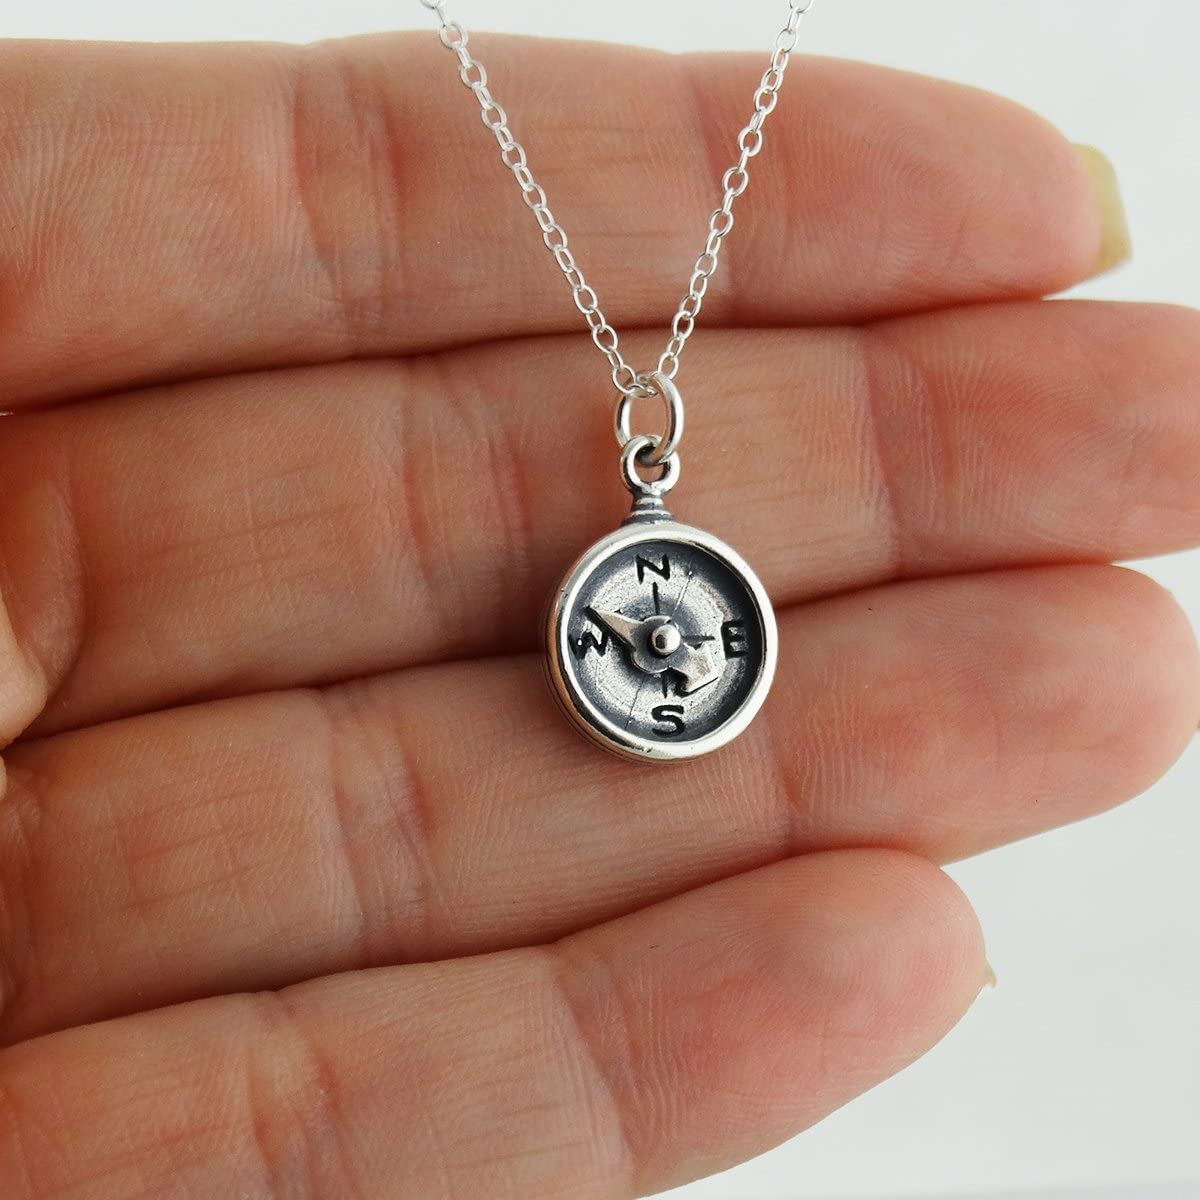 FashionJunkie4Life Sterling Silver Compass Pendant Necklace with Spinning Needle 18 Cable Chain